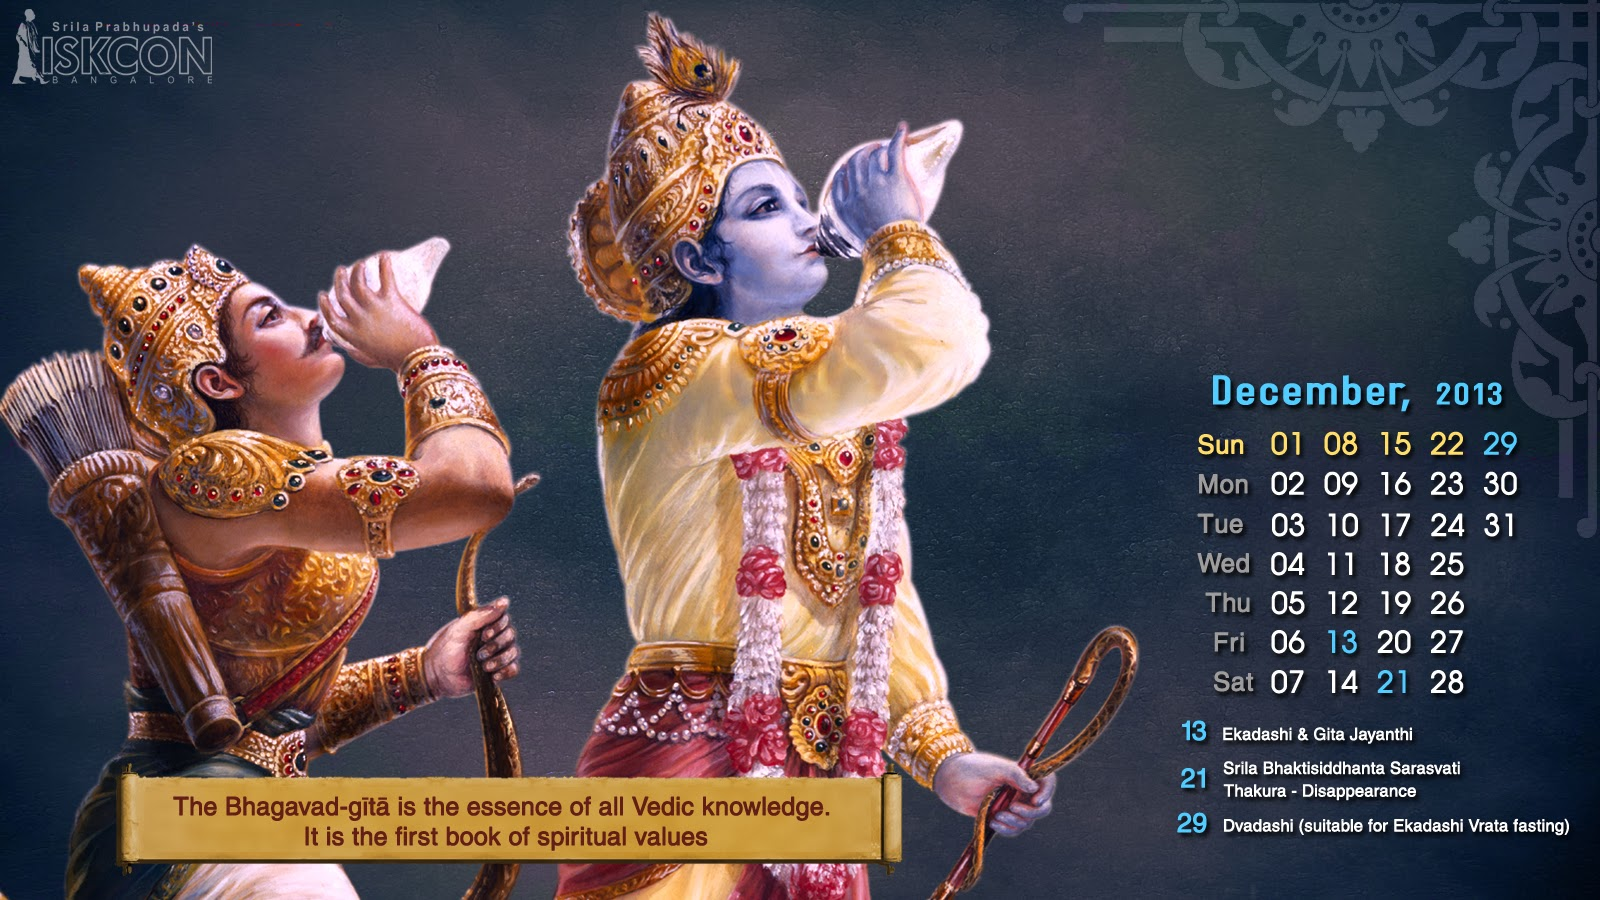 thakur prasad calendar 2012 pdf download